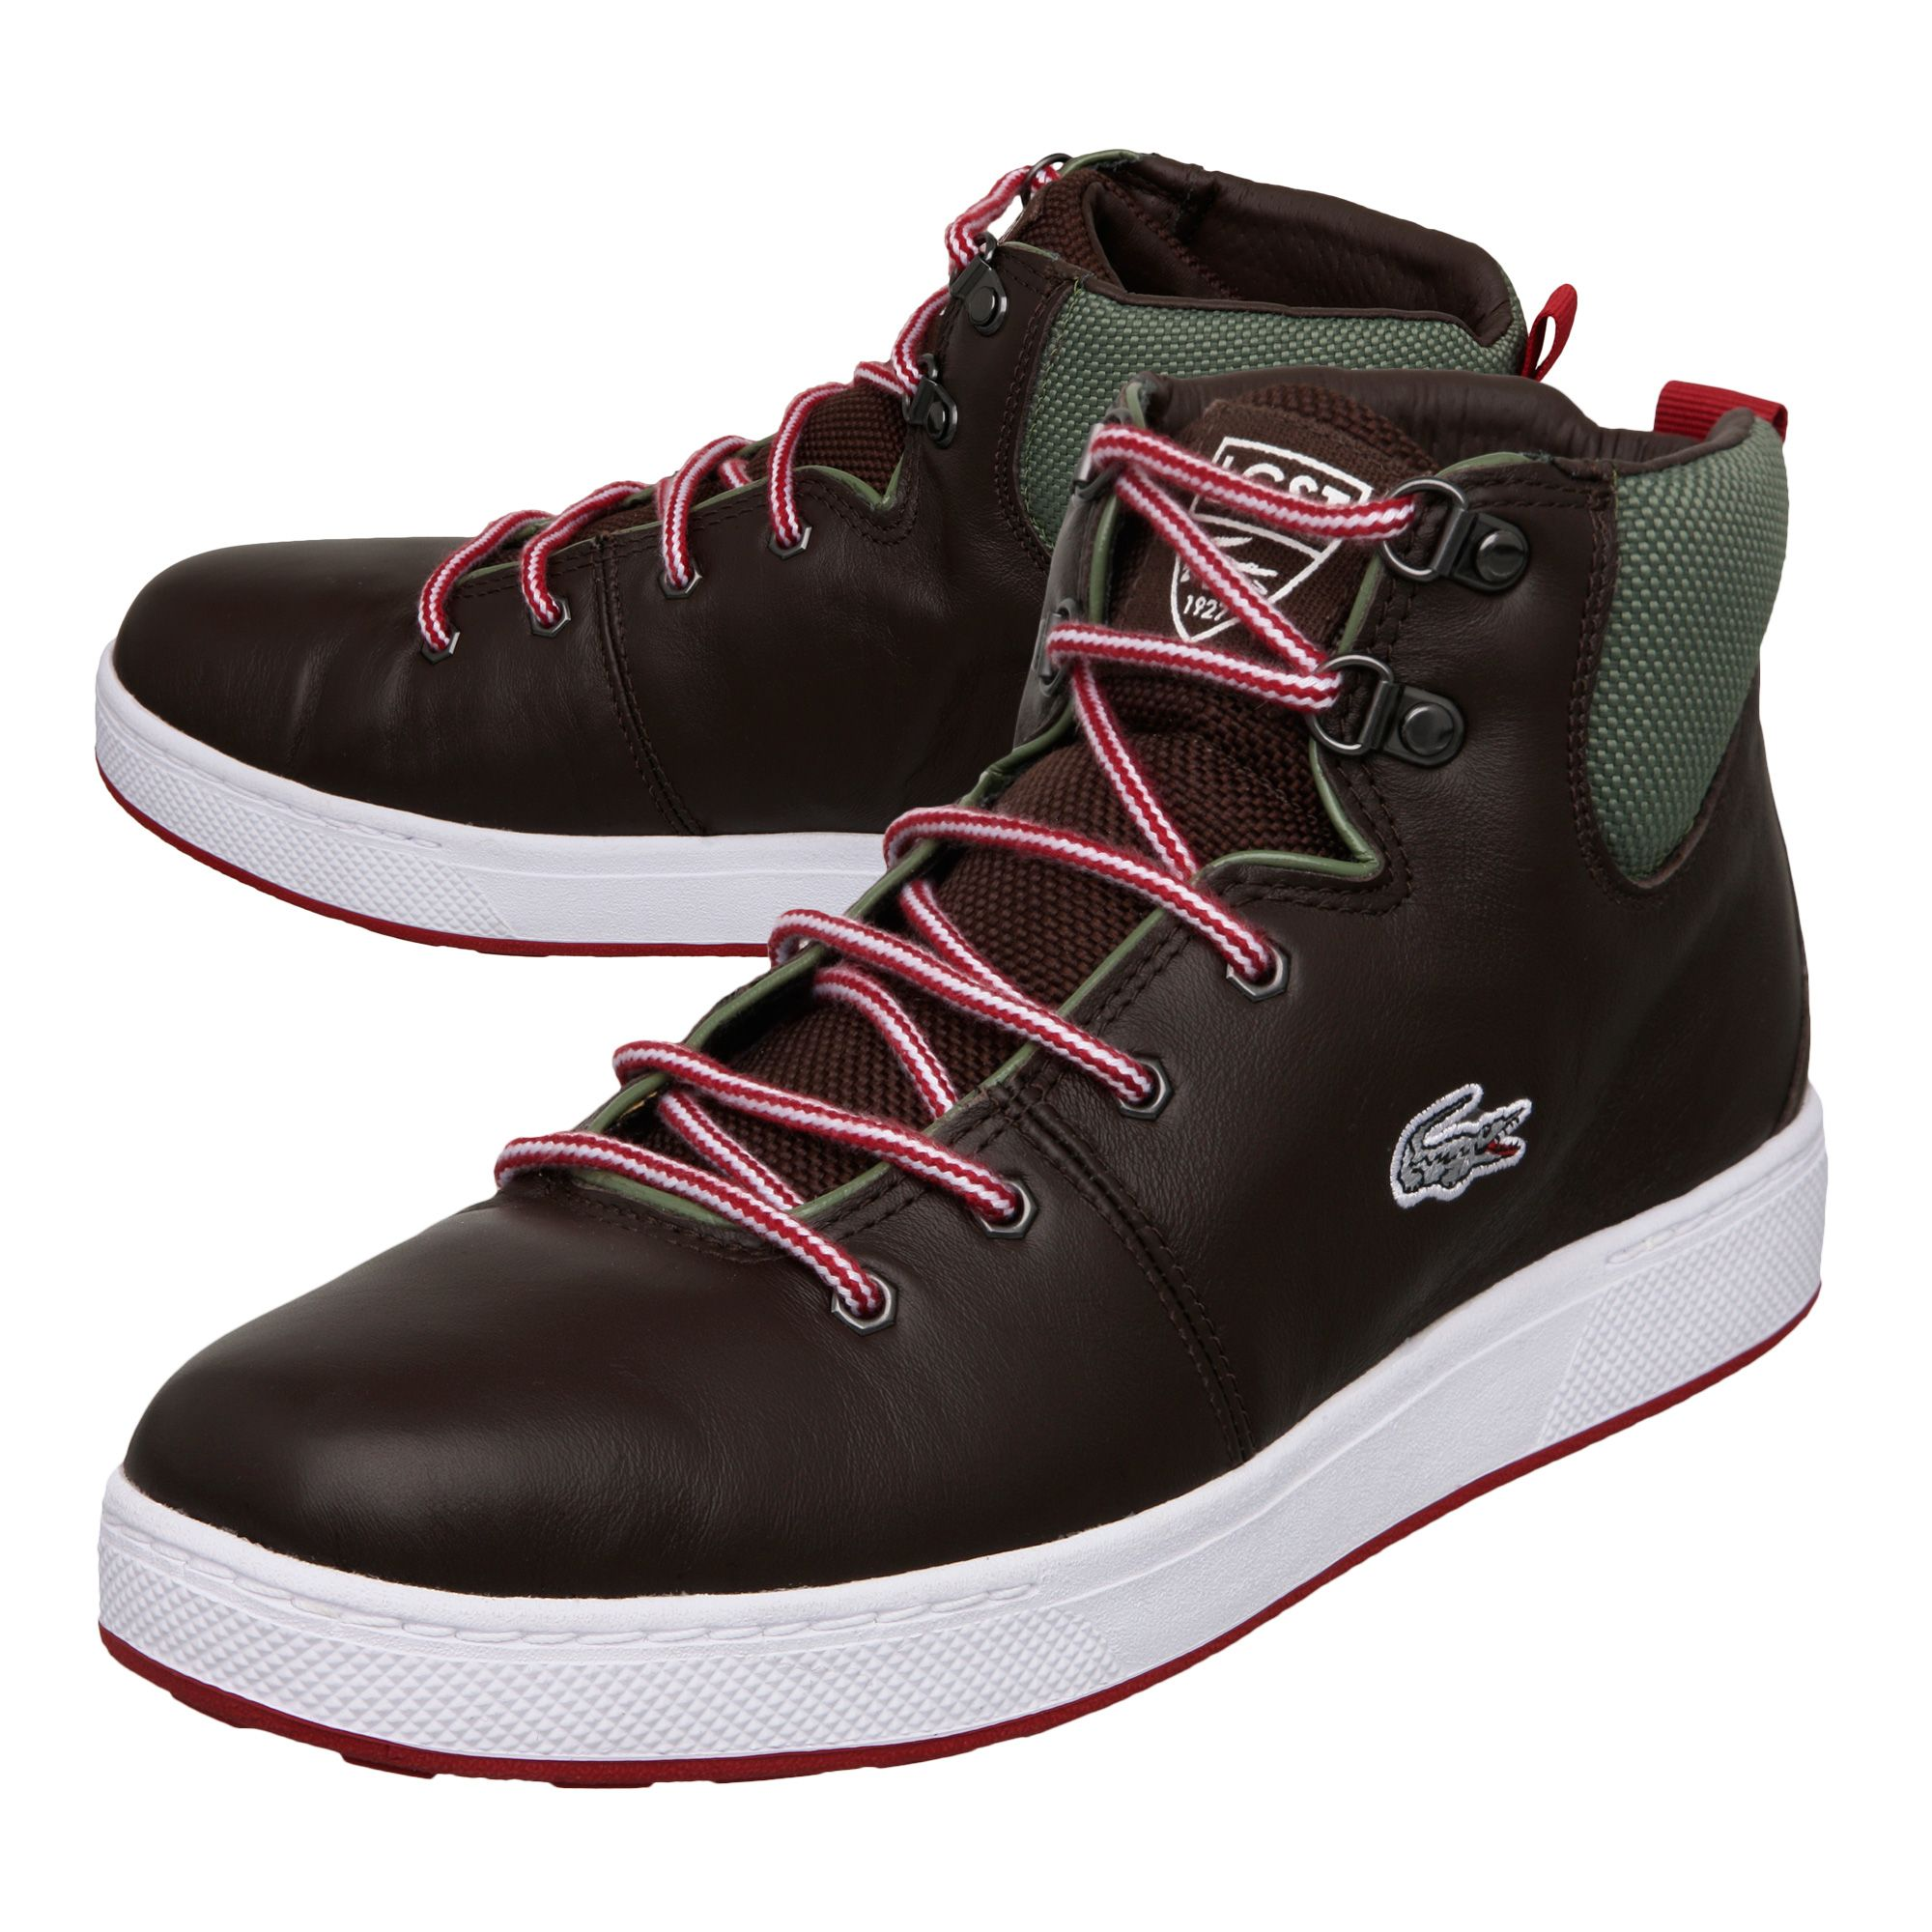 lacoste studland ci spm high top trainers in brown for men